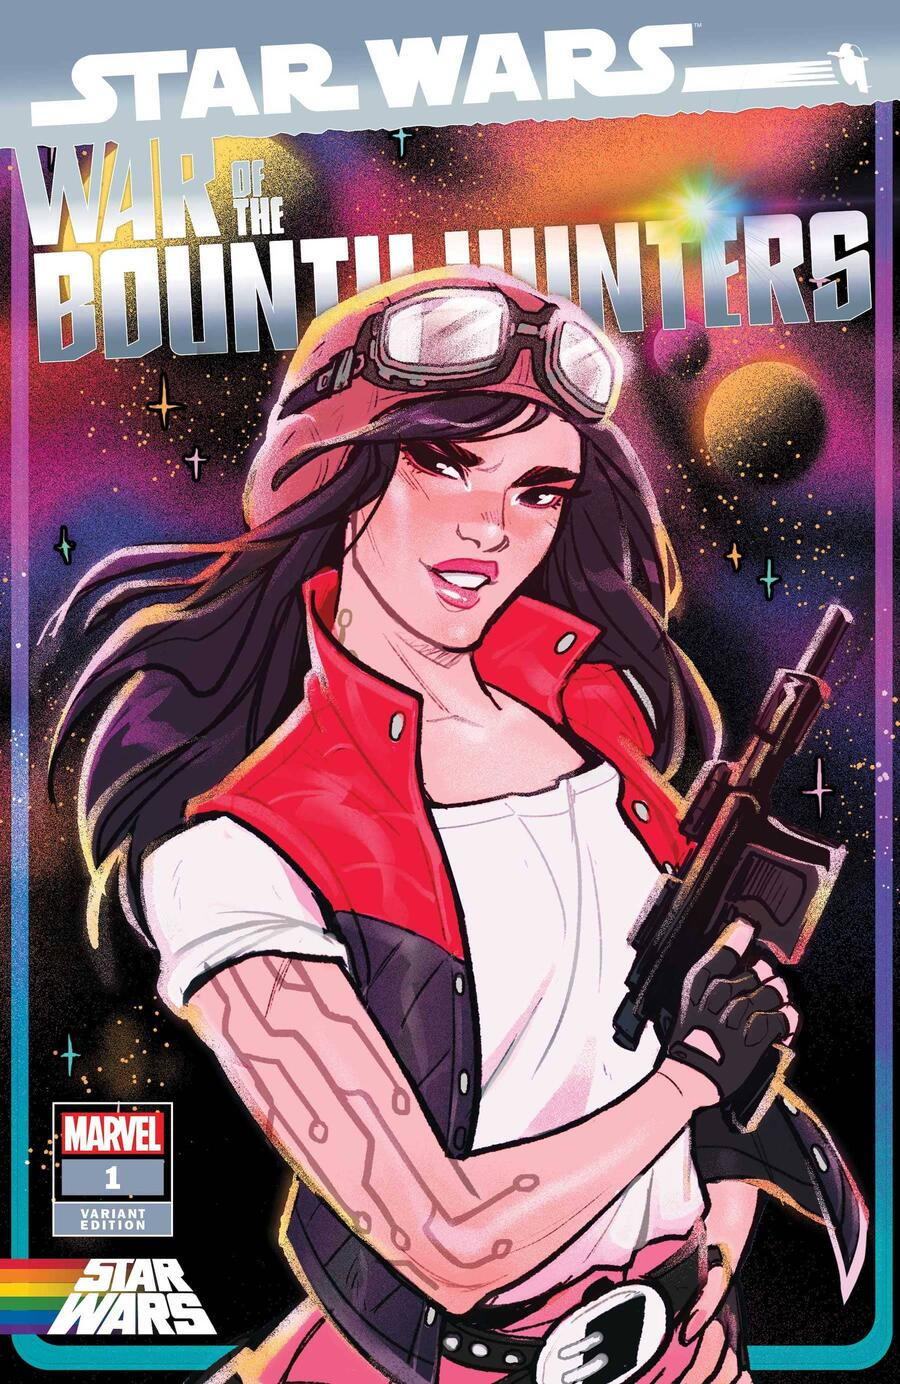 STAR WARS: WAR OF THE BOUNTY HUNTERS #1 PRIDE VARIANT COVER by BABS TARR (APR210950)